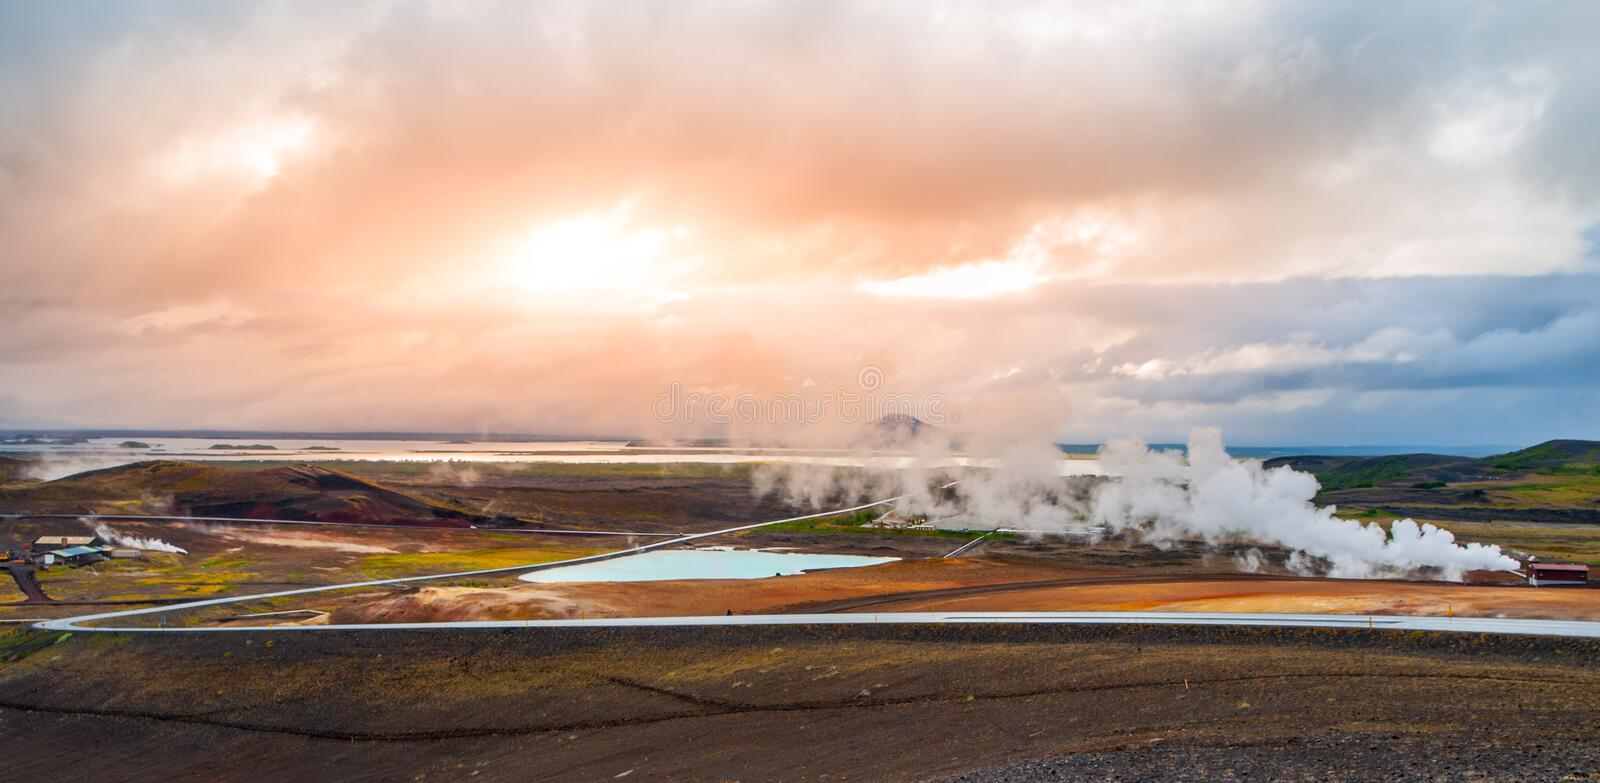 Geothermal activity with smoke at Myvatn Lake, Iceland stock images